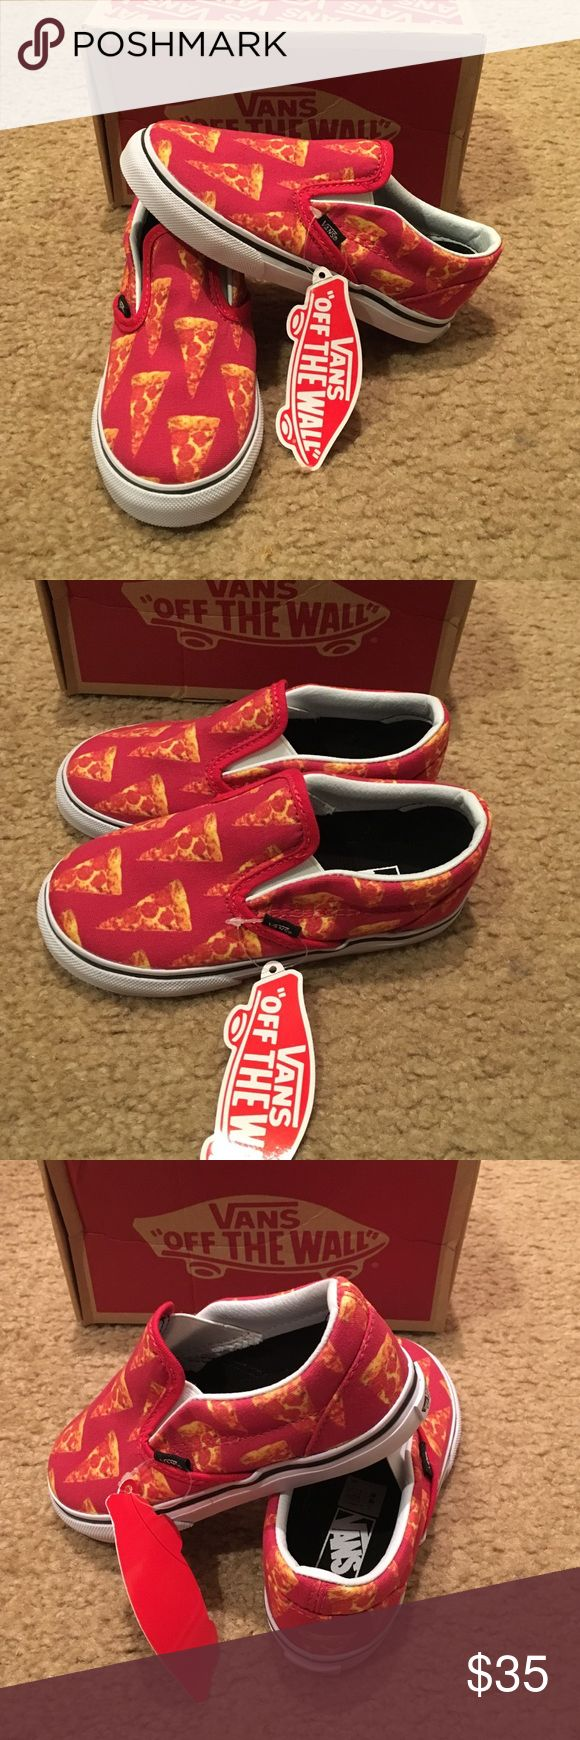 Vans Authentic Toddler Late Night Pizza Sneakers New with tags. Red/white/pizza. Classic slip Ons. Unisex Vans Shoes Sneakers